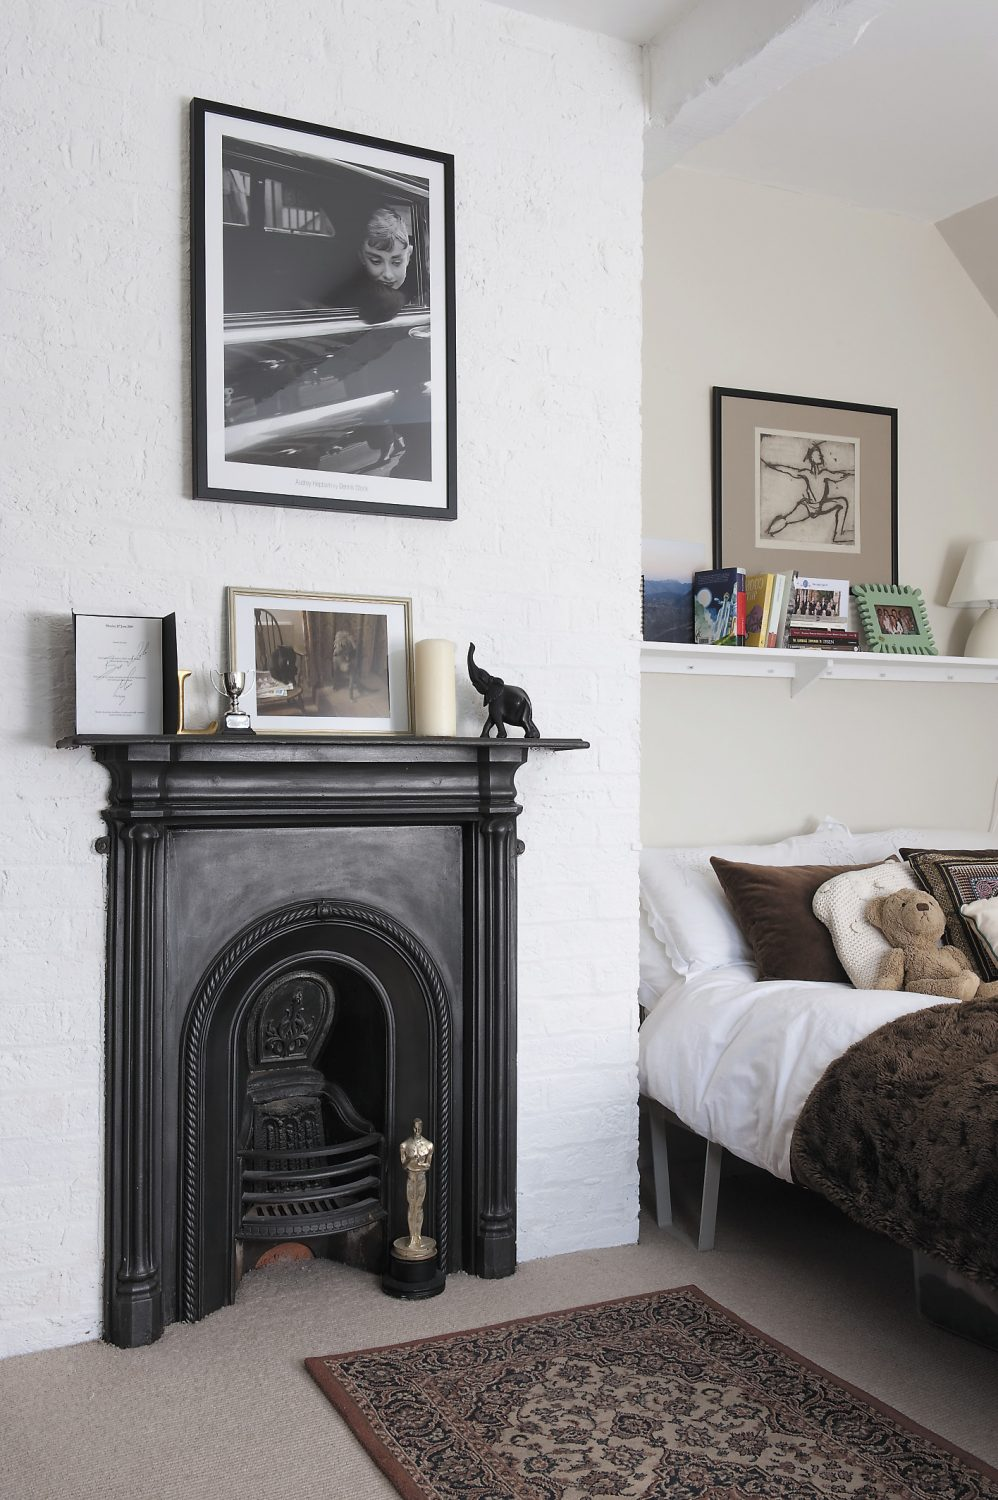 The fireplaces in the bedrooms were probably installed when the oast was converted in 1890